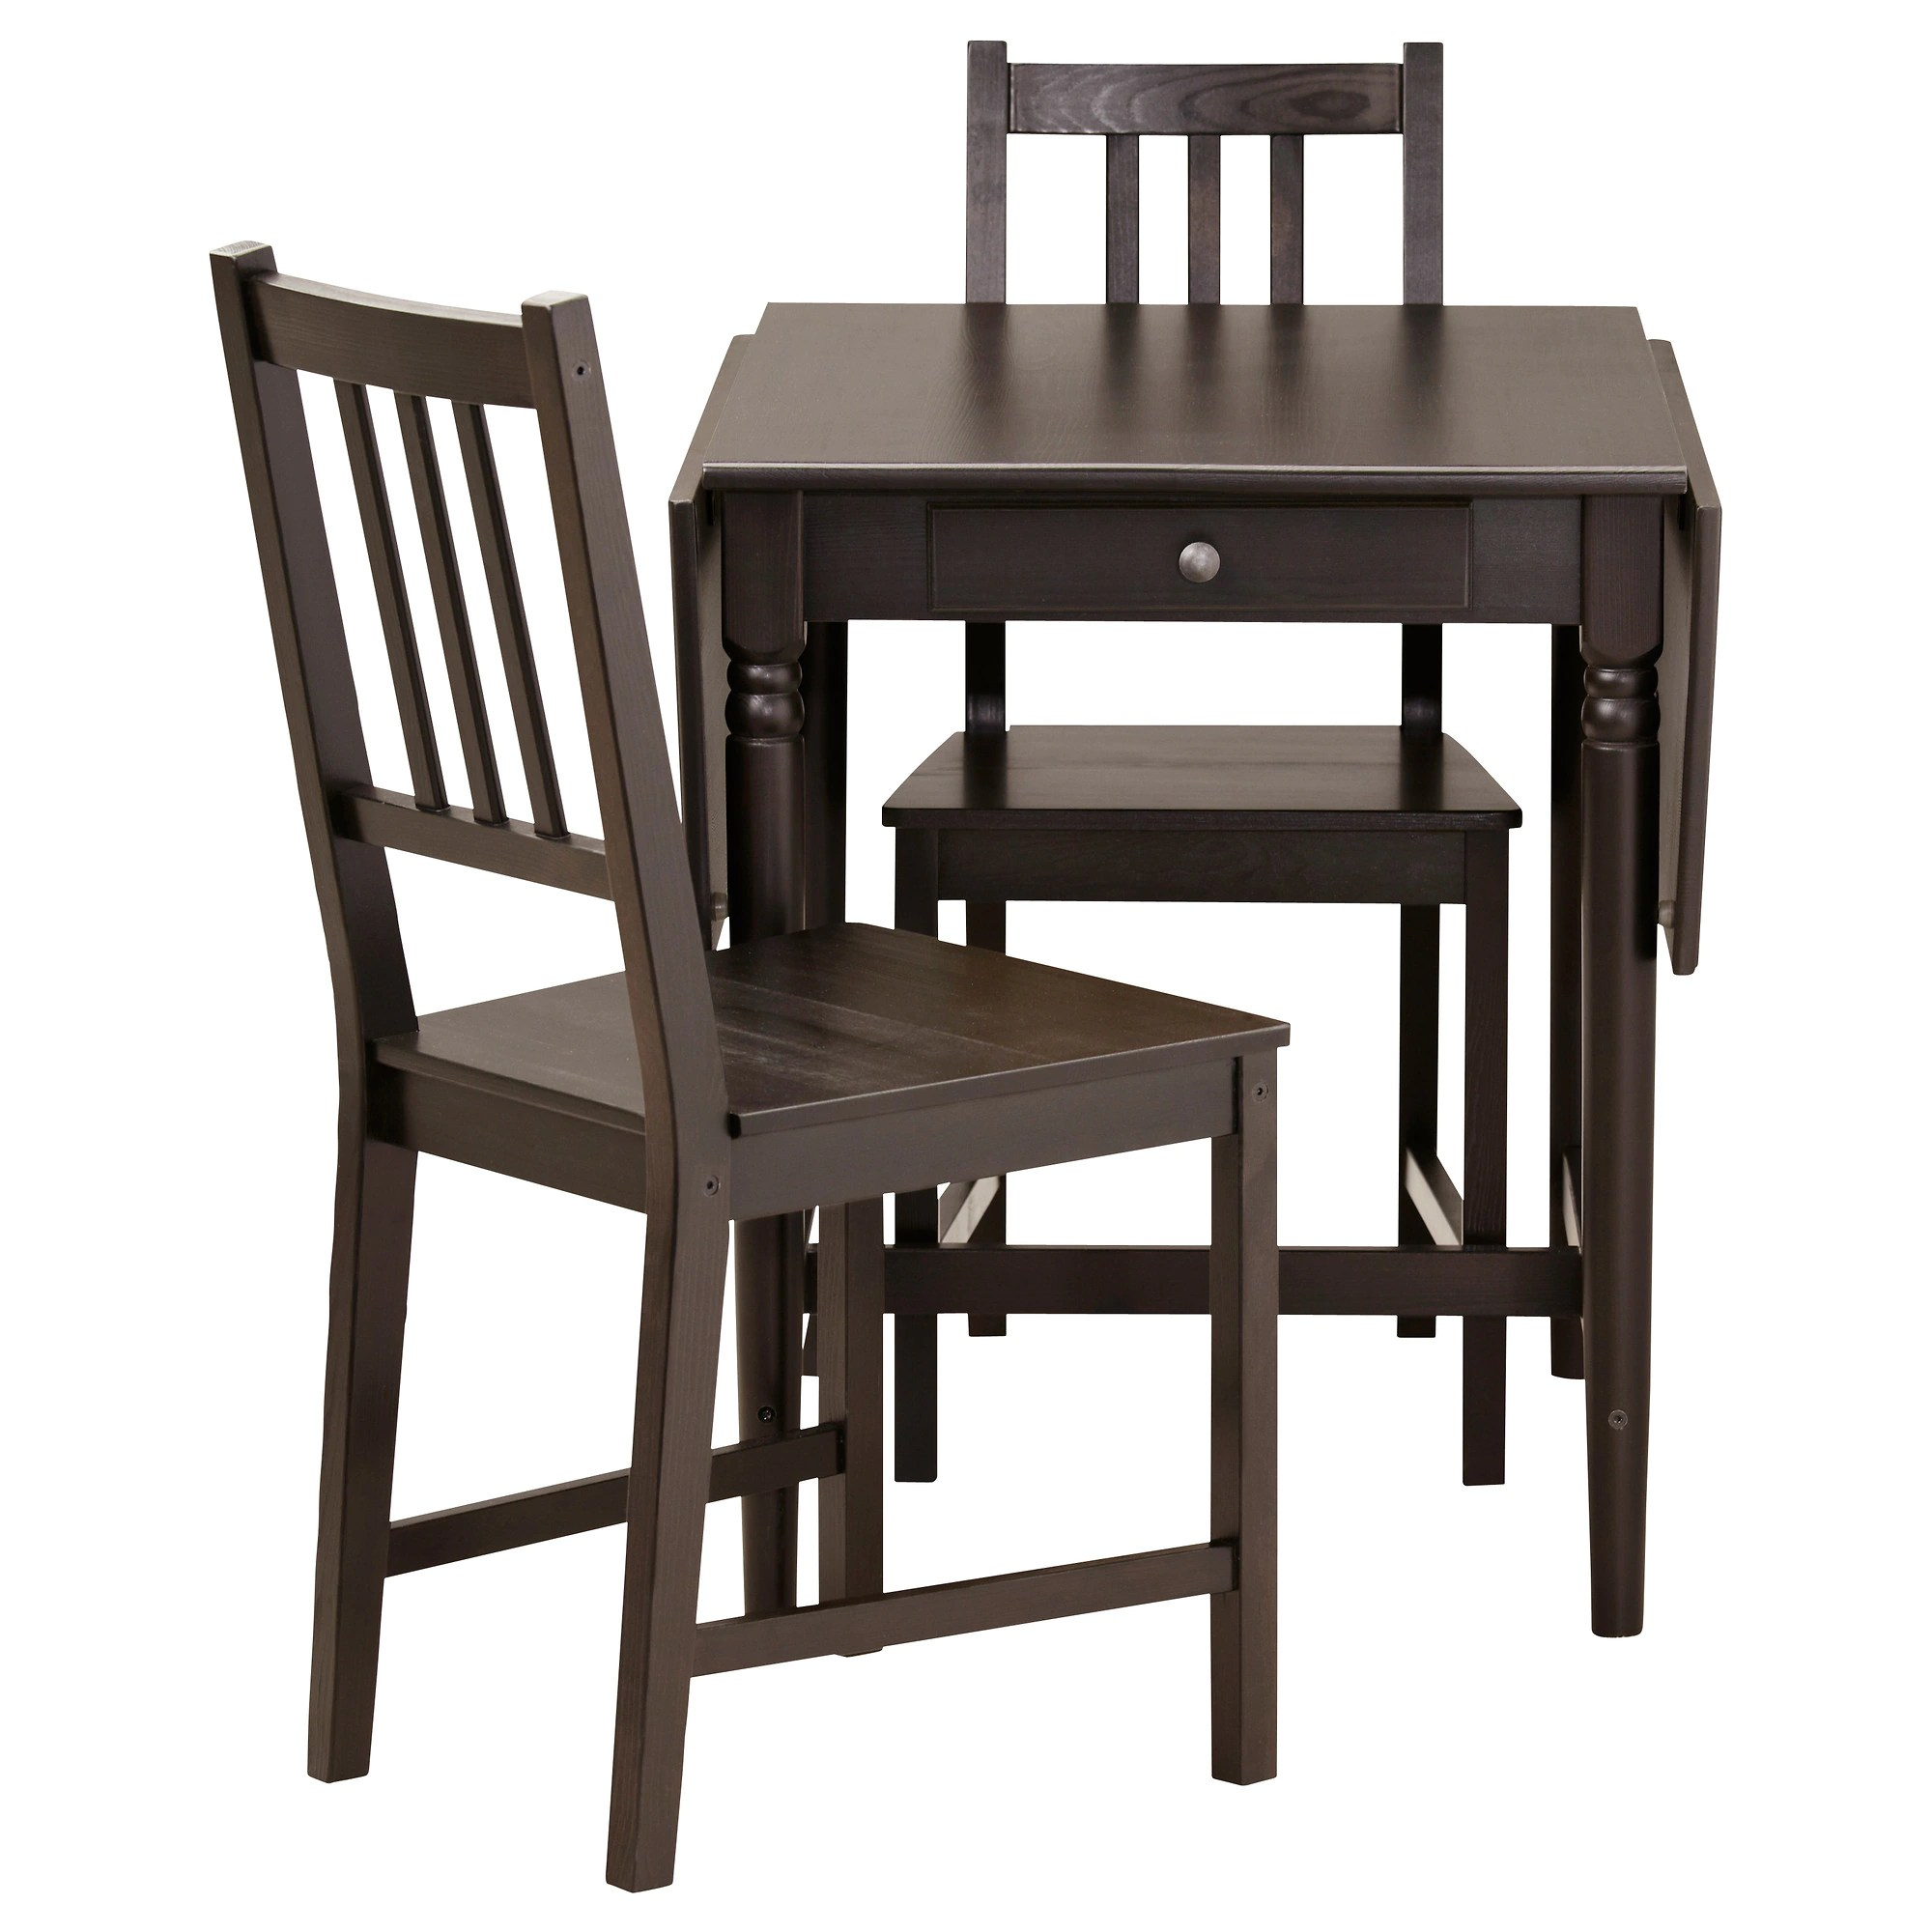 two seat kitchen table INGATORP STEFAN table and 2 chairs black brown Length 34 5